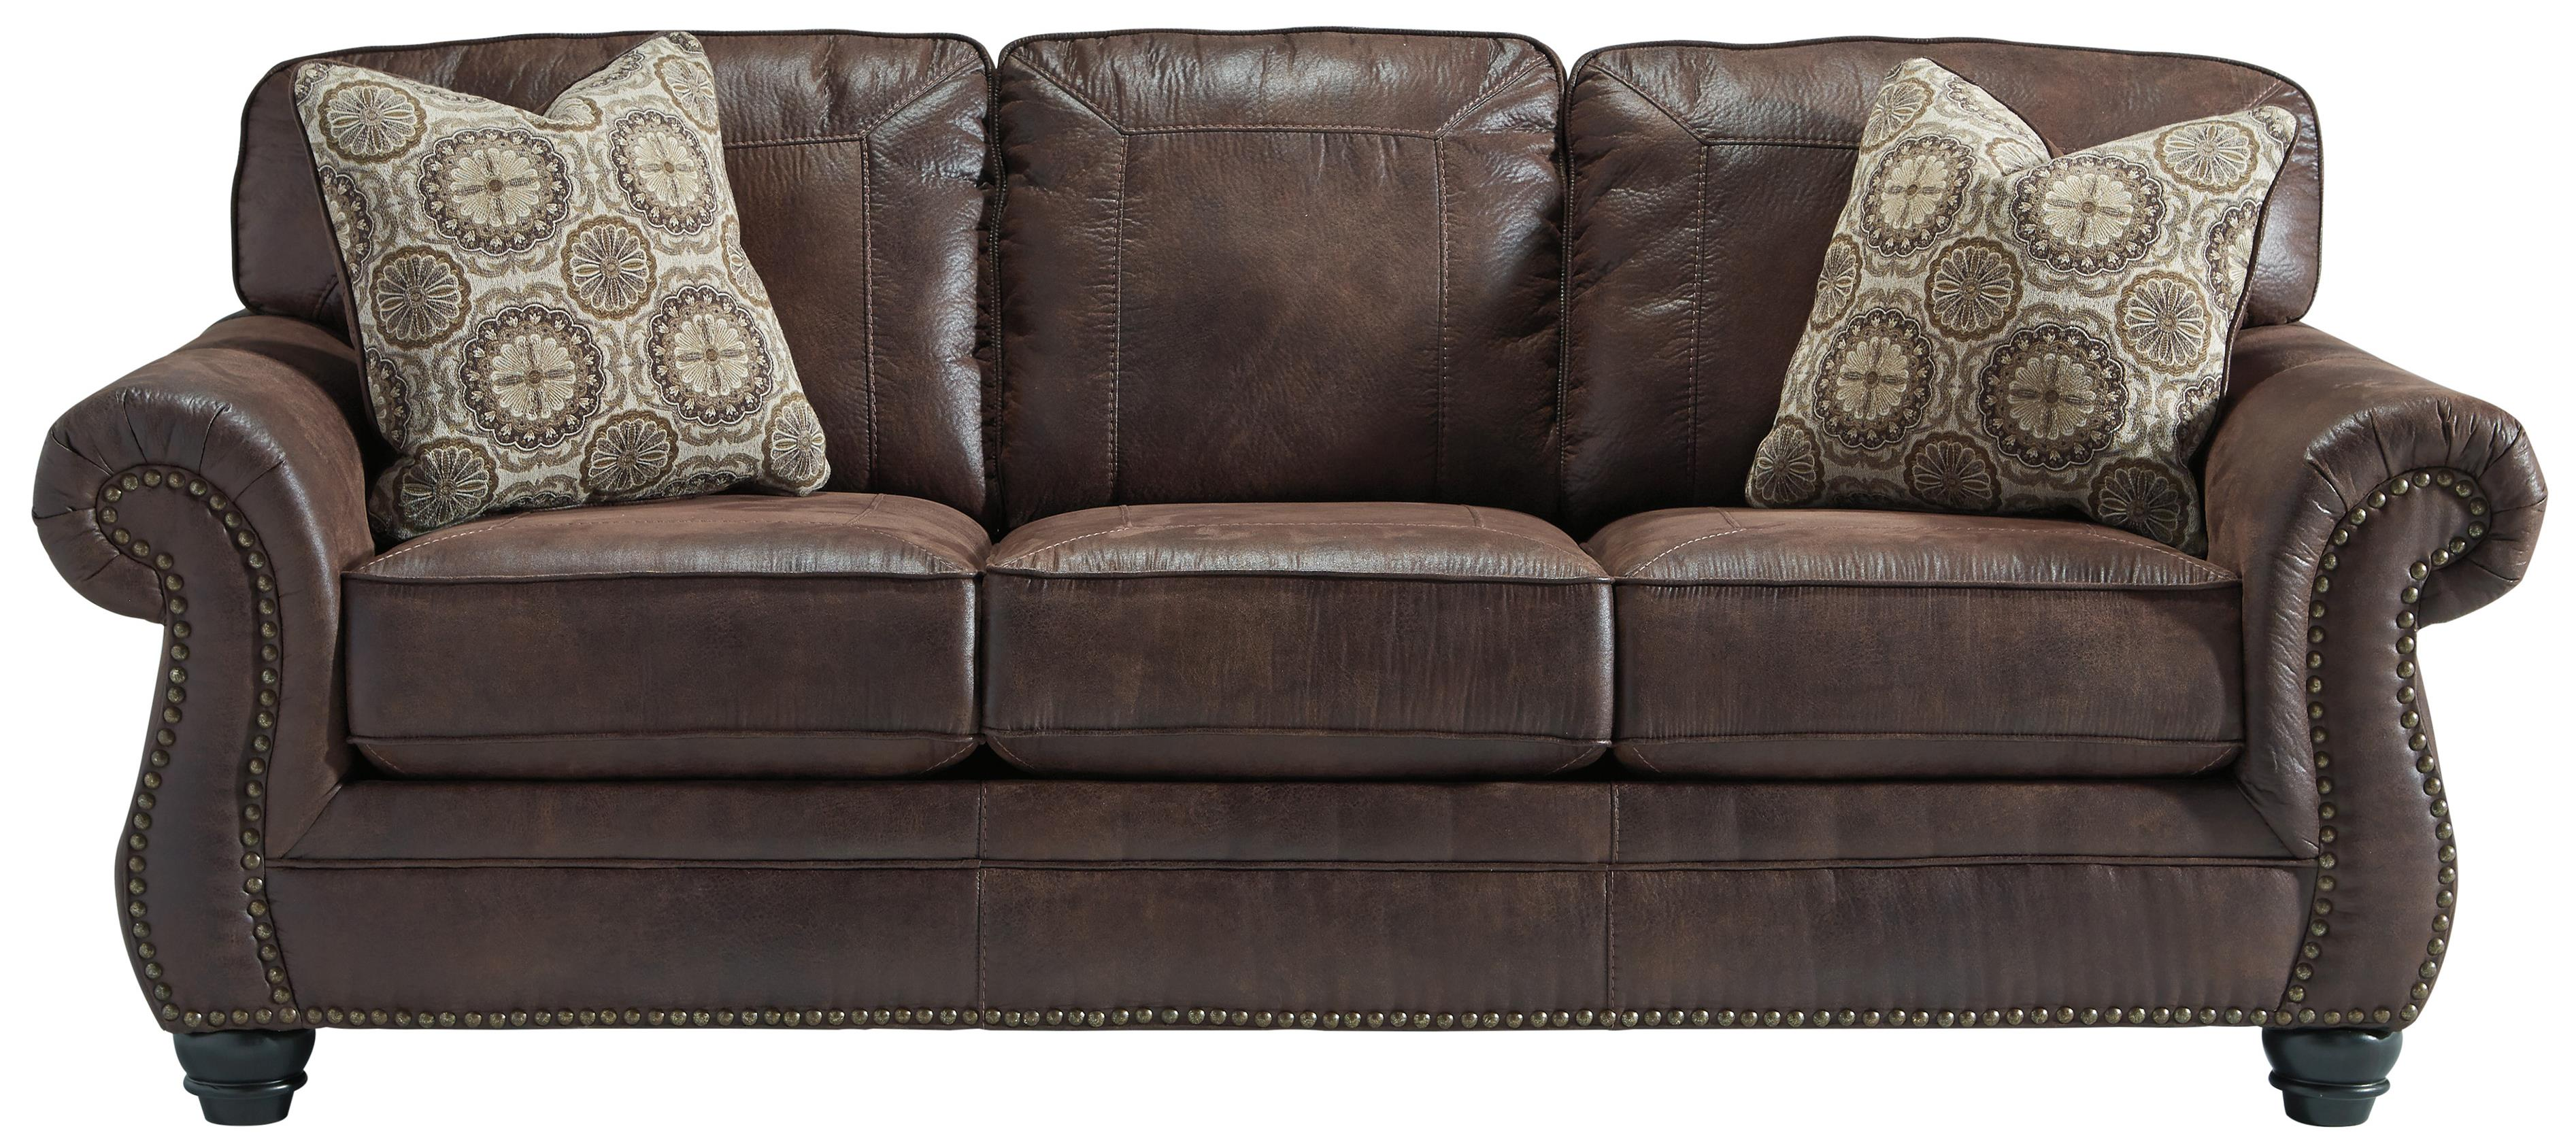 Kunstleder Couch Faux Leather Sofa With Rolled Arms And Nailhead Trim By